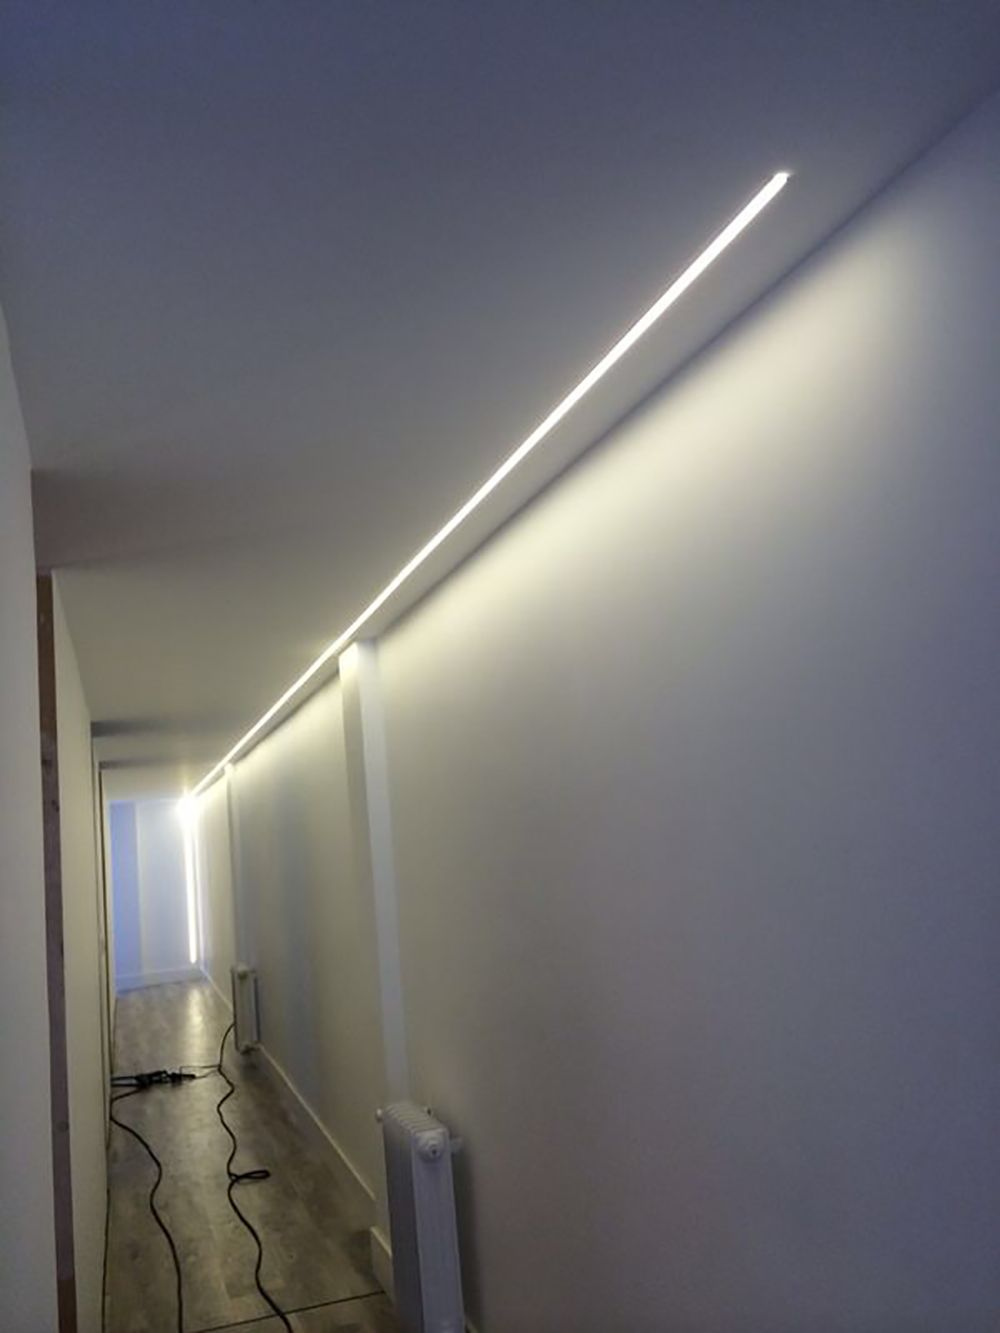 Ideas de decoraci n e iluminaci n con tiras de leds luz for Plafones pared leroy